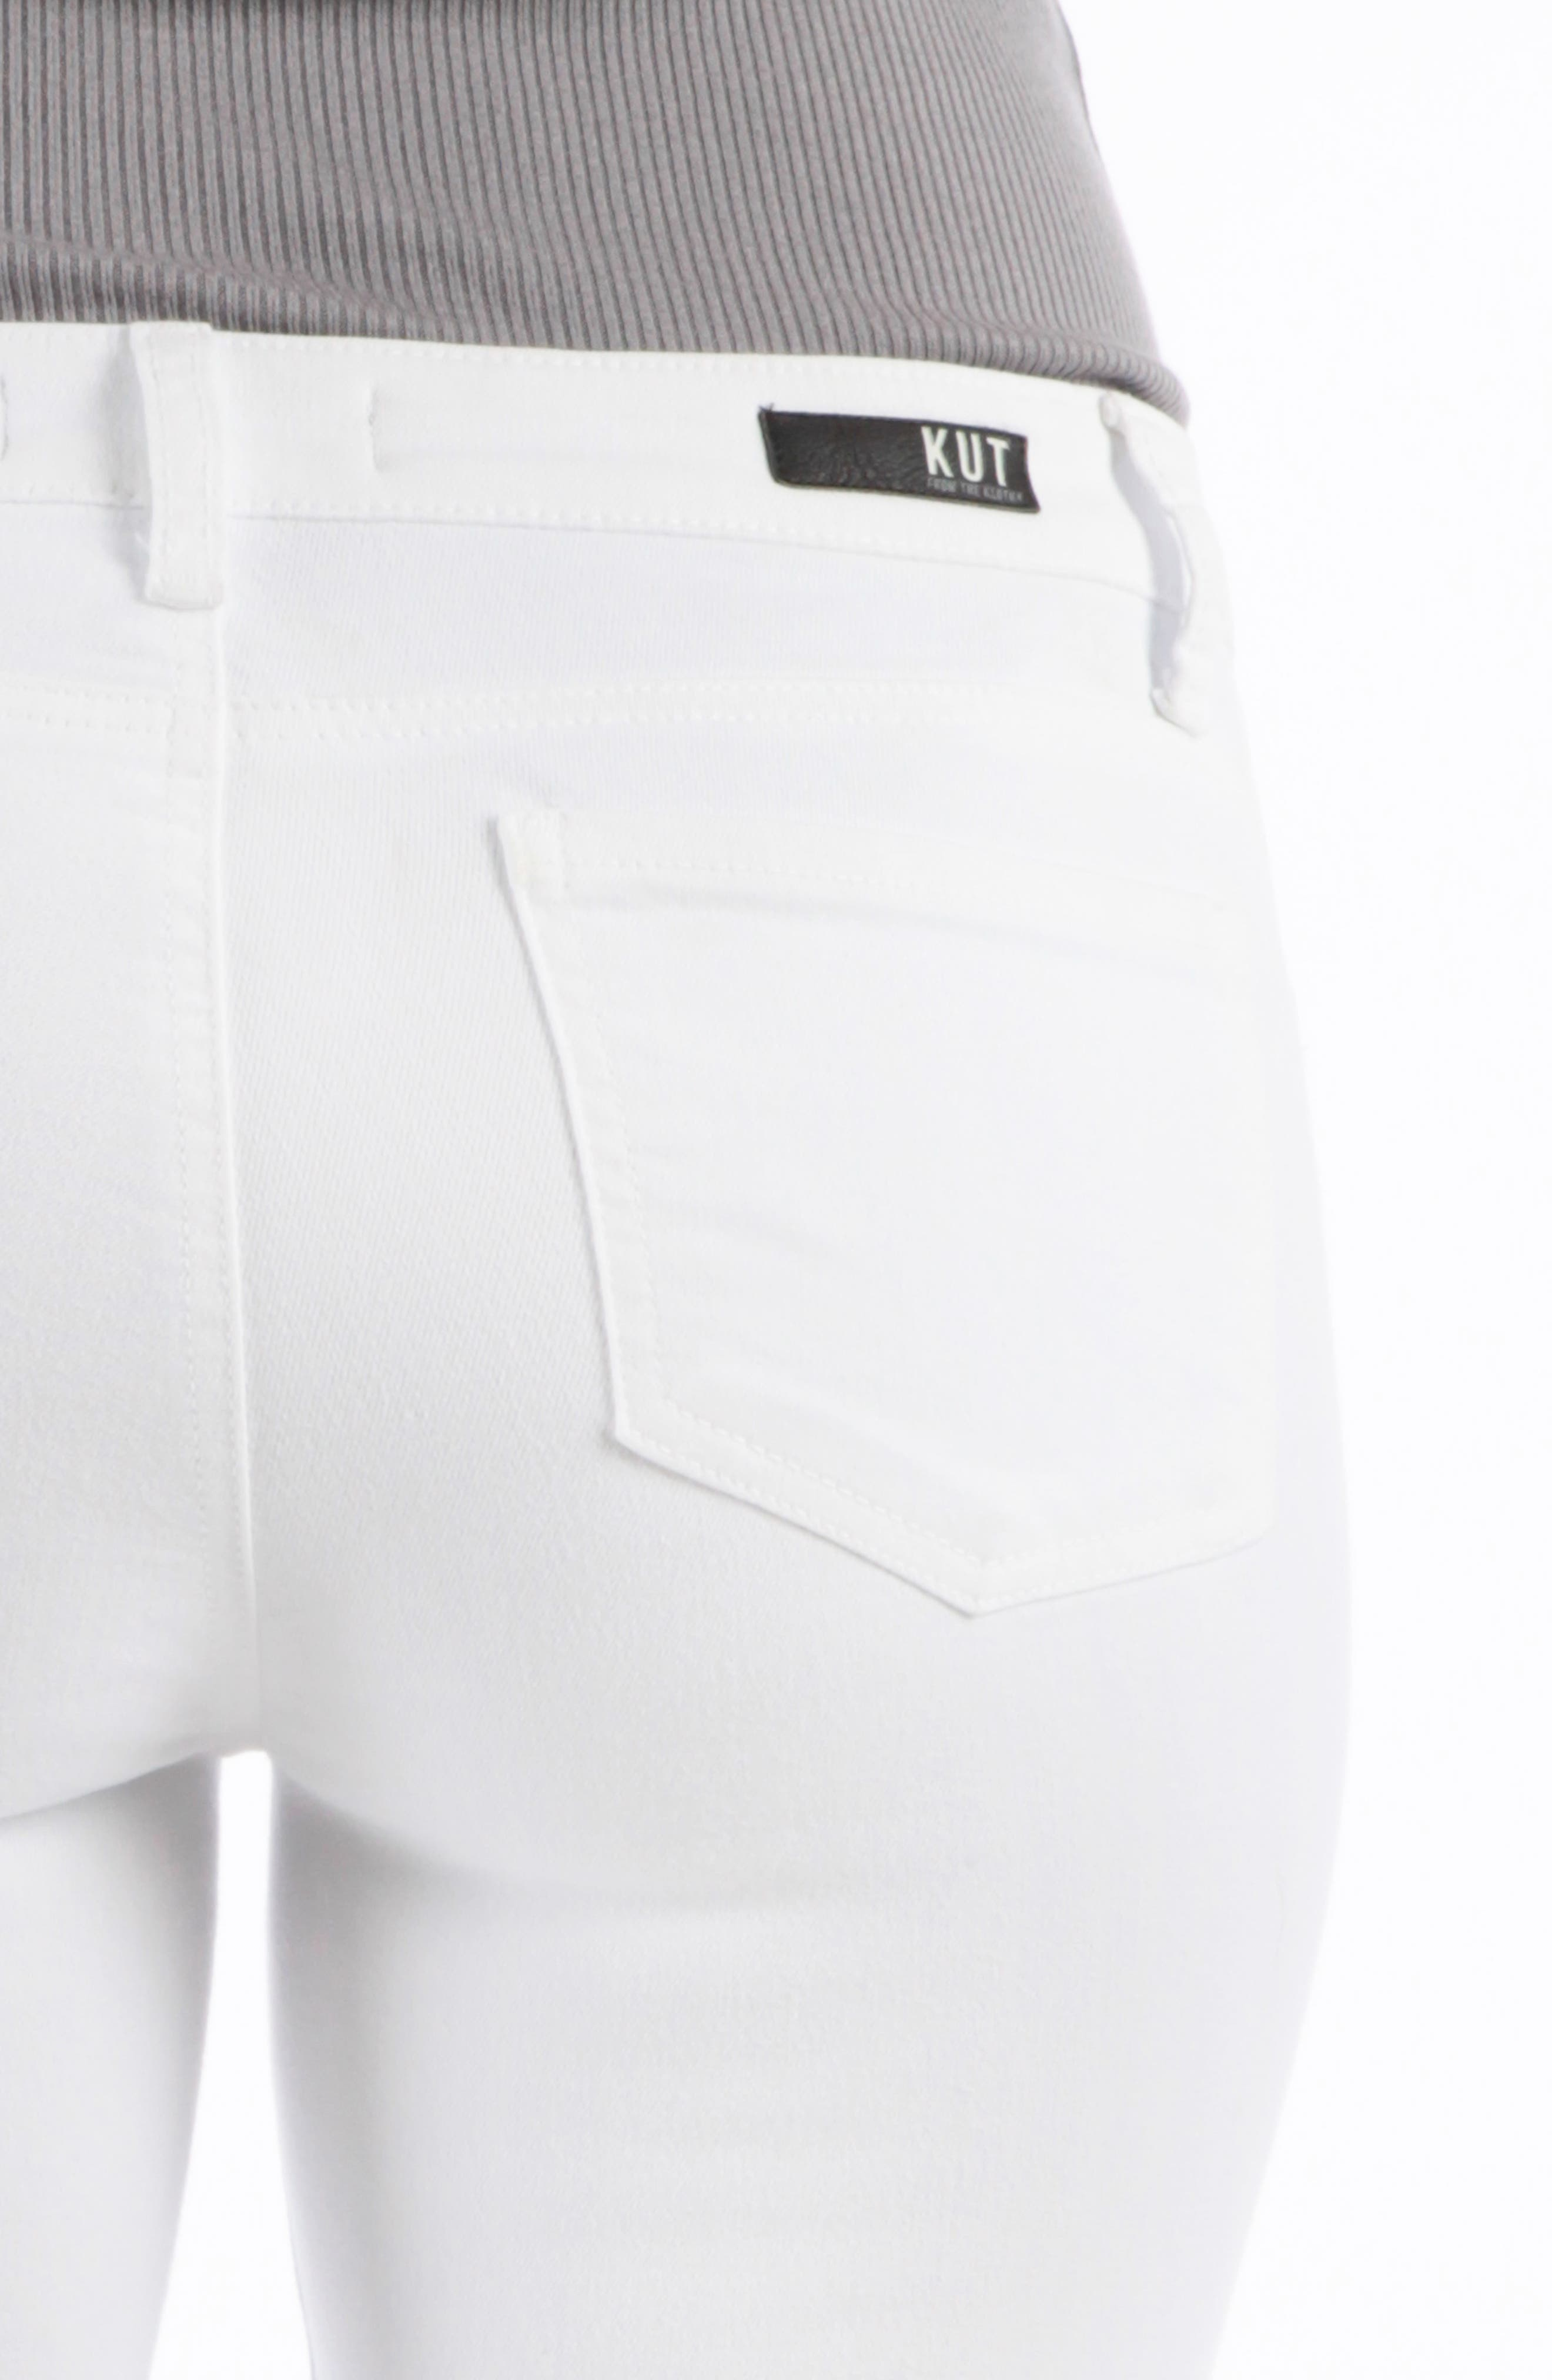 KUT FROM THE KLOTH, Connie Ankle Skinny Jeans, Alternate thumbnail 4, color, OPTIC WHITE